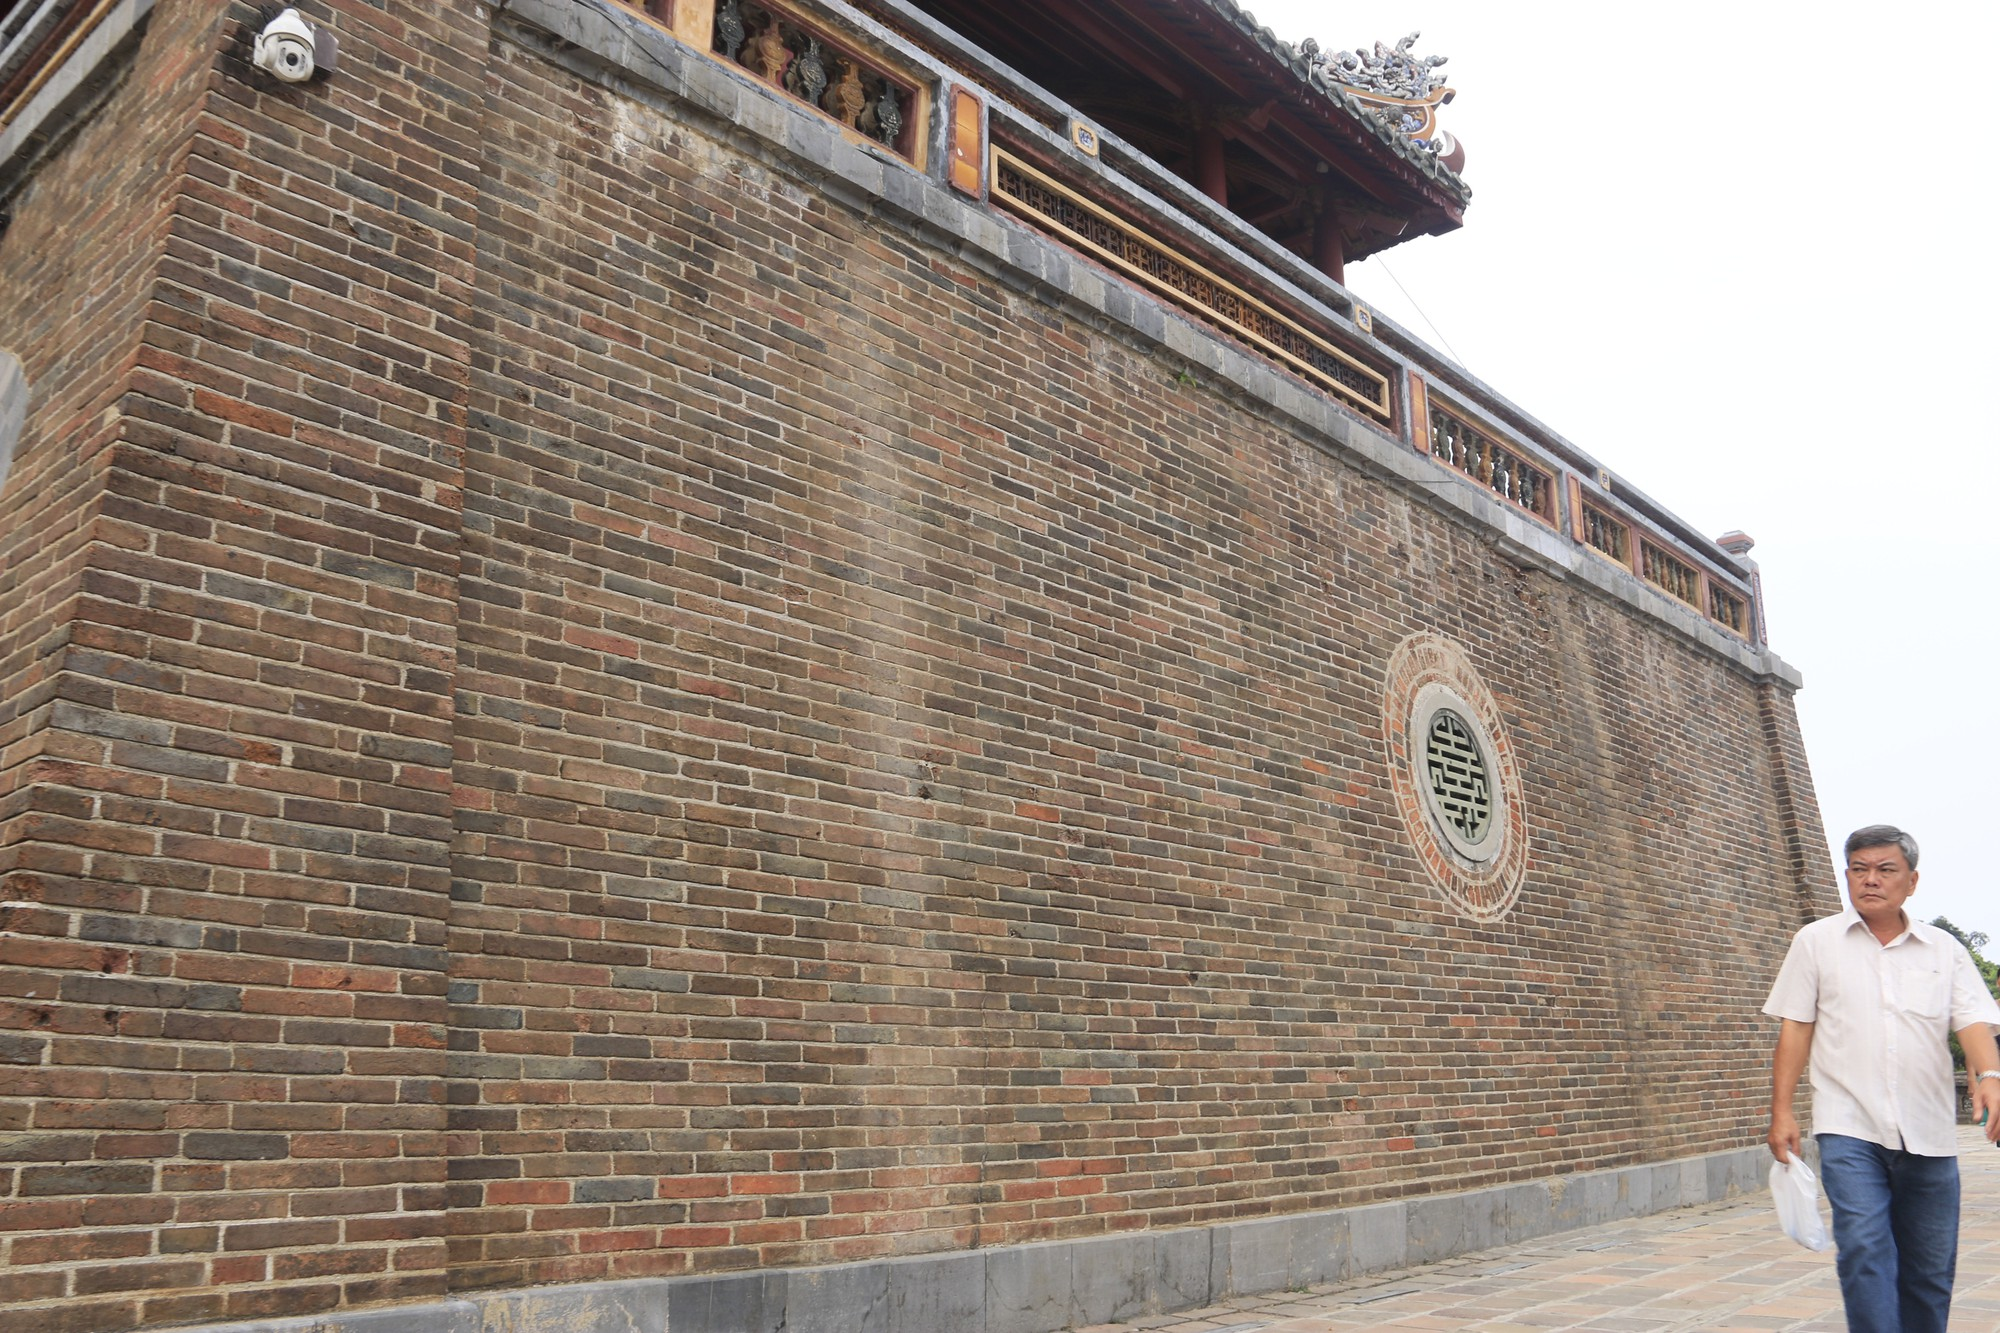 Meridian Gate in ancient Hue citadel boasts fresh look after clean-up